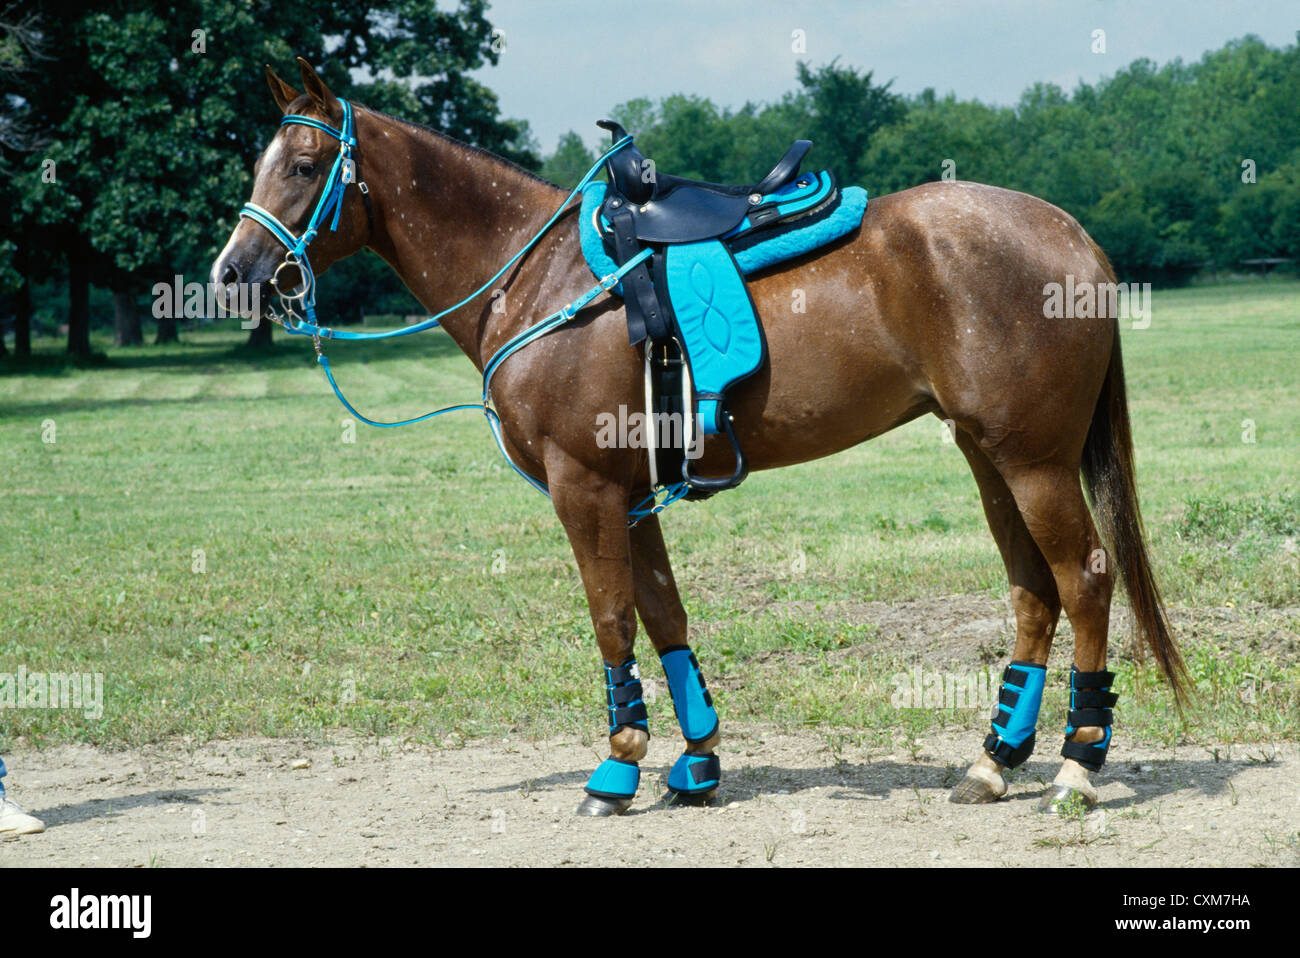 Western Tack High Resolution Stock Photography And Images Alamy